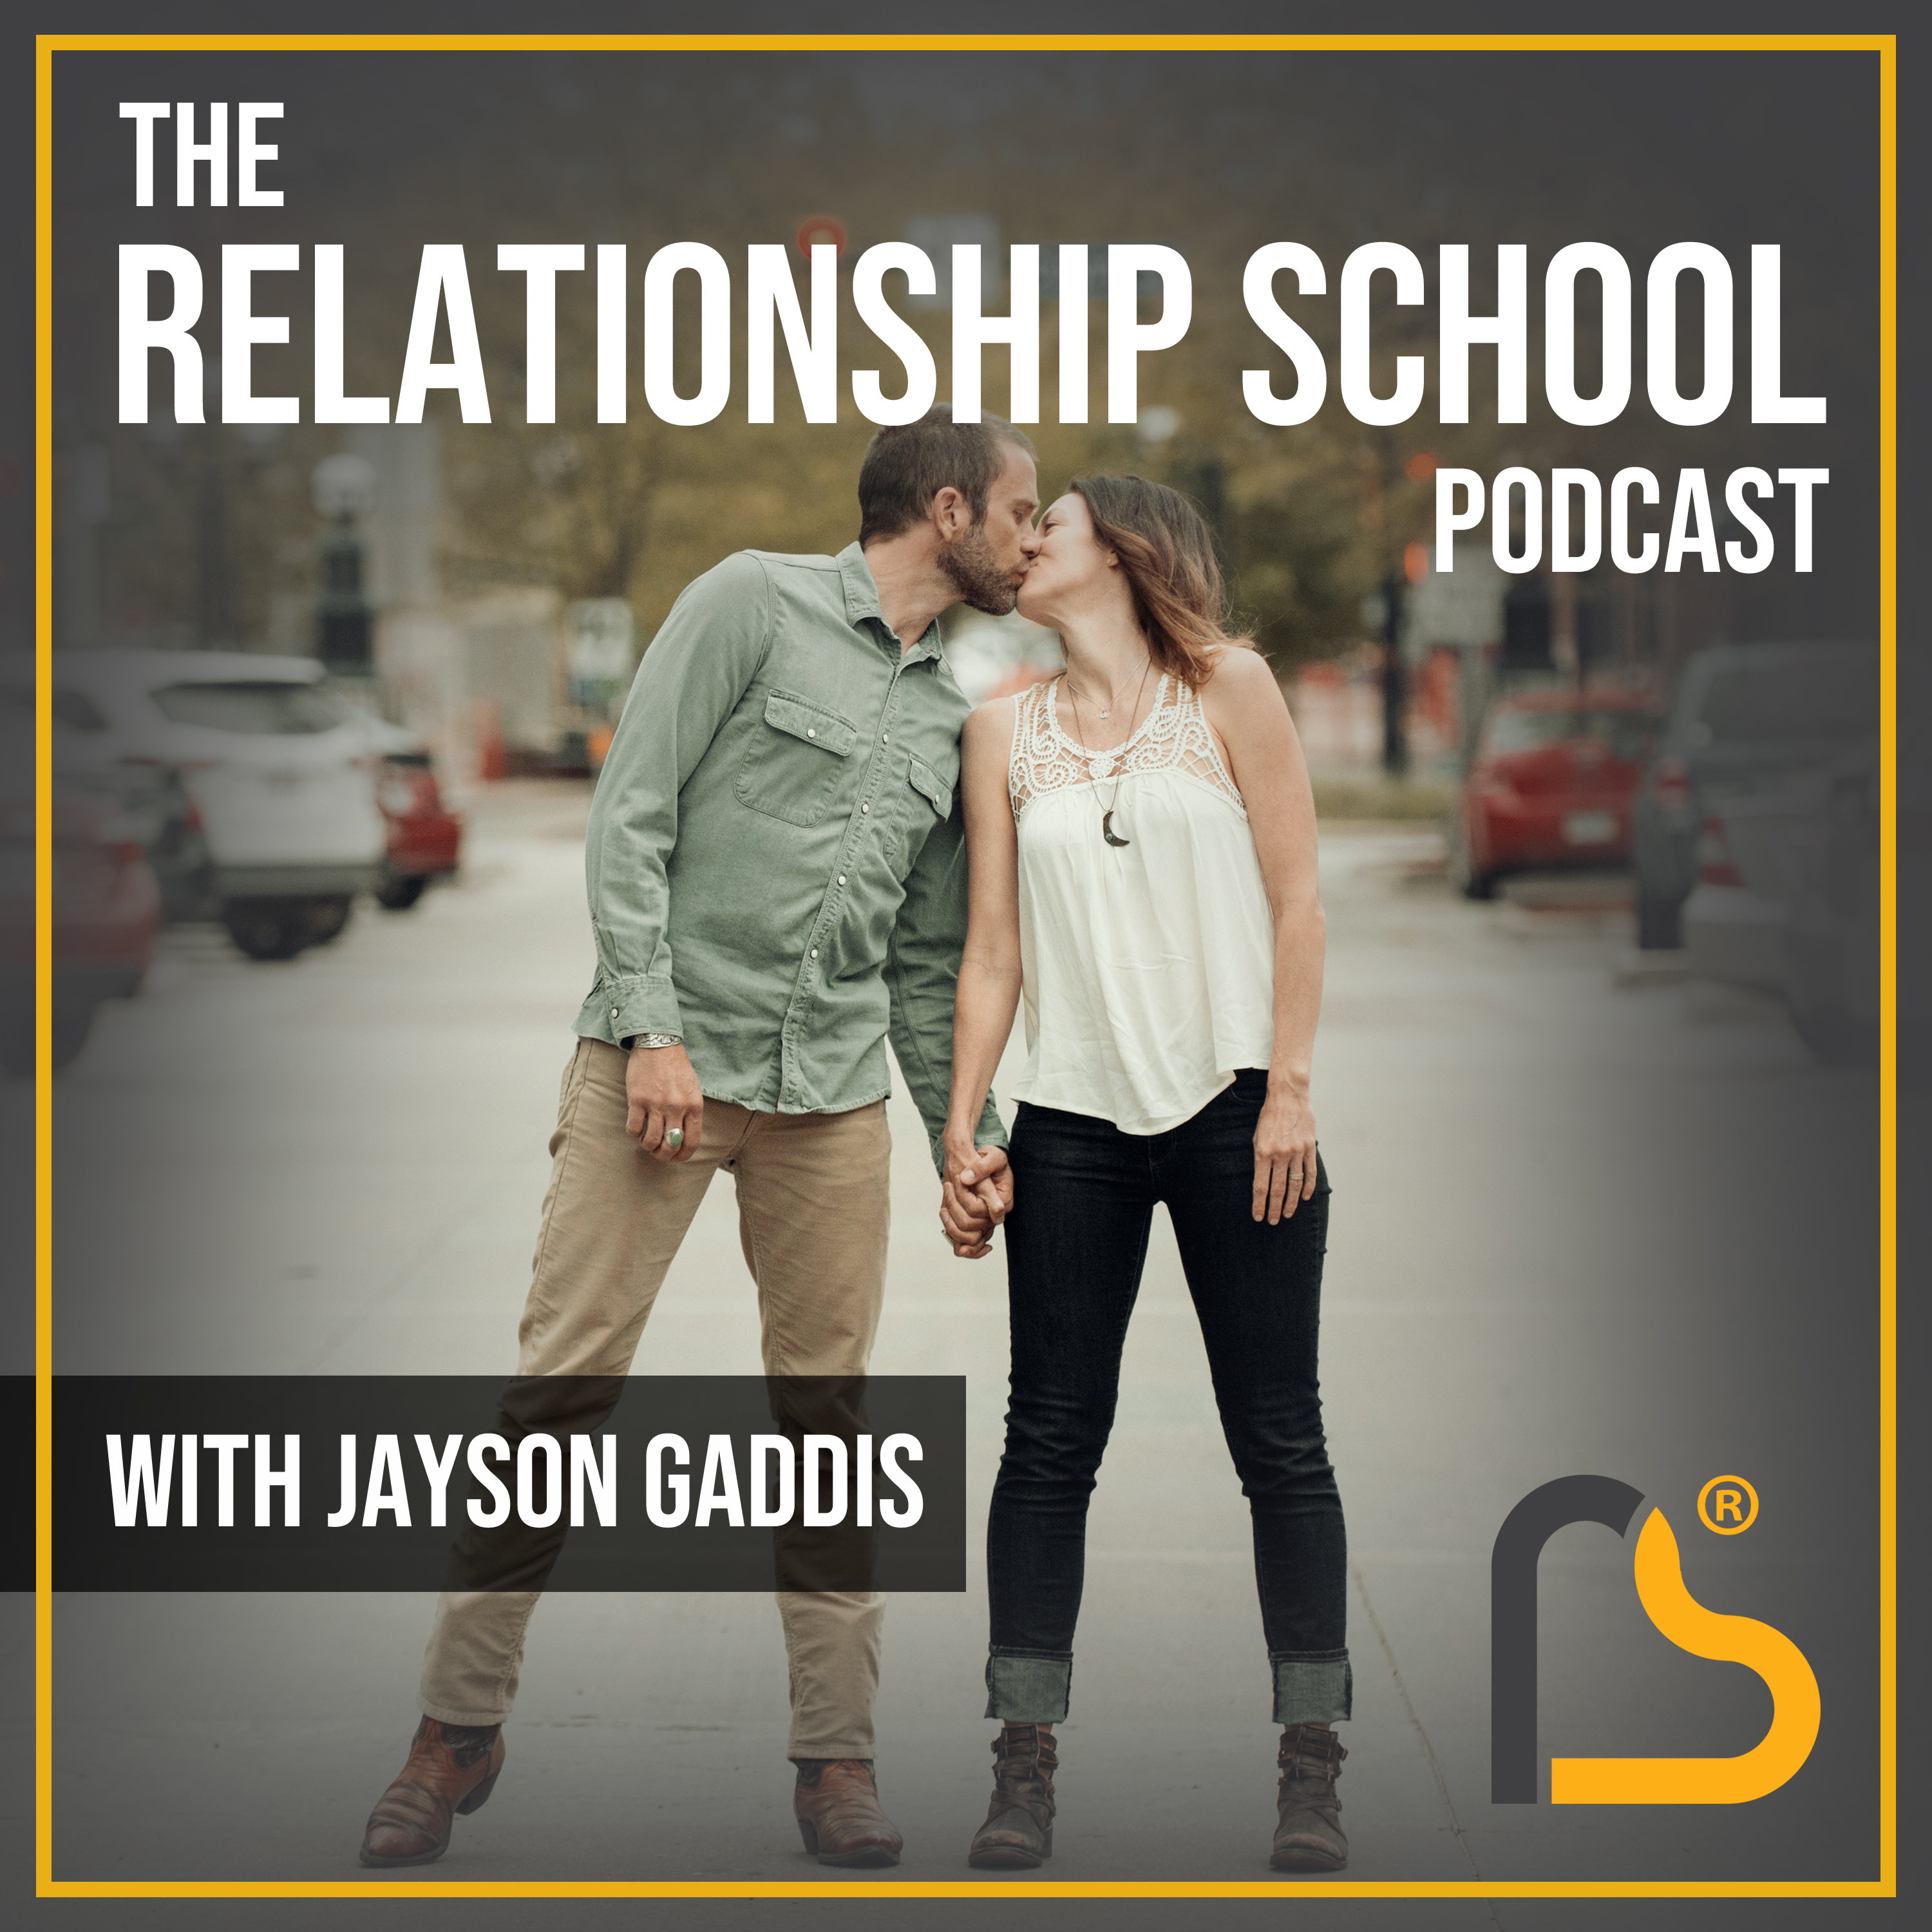 The Relationship School Podcast - The Power of Body Language & Being Socially Awkward  - Relationship School Podcast EPISODE 266